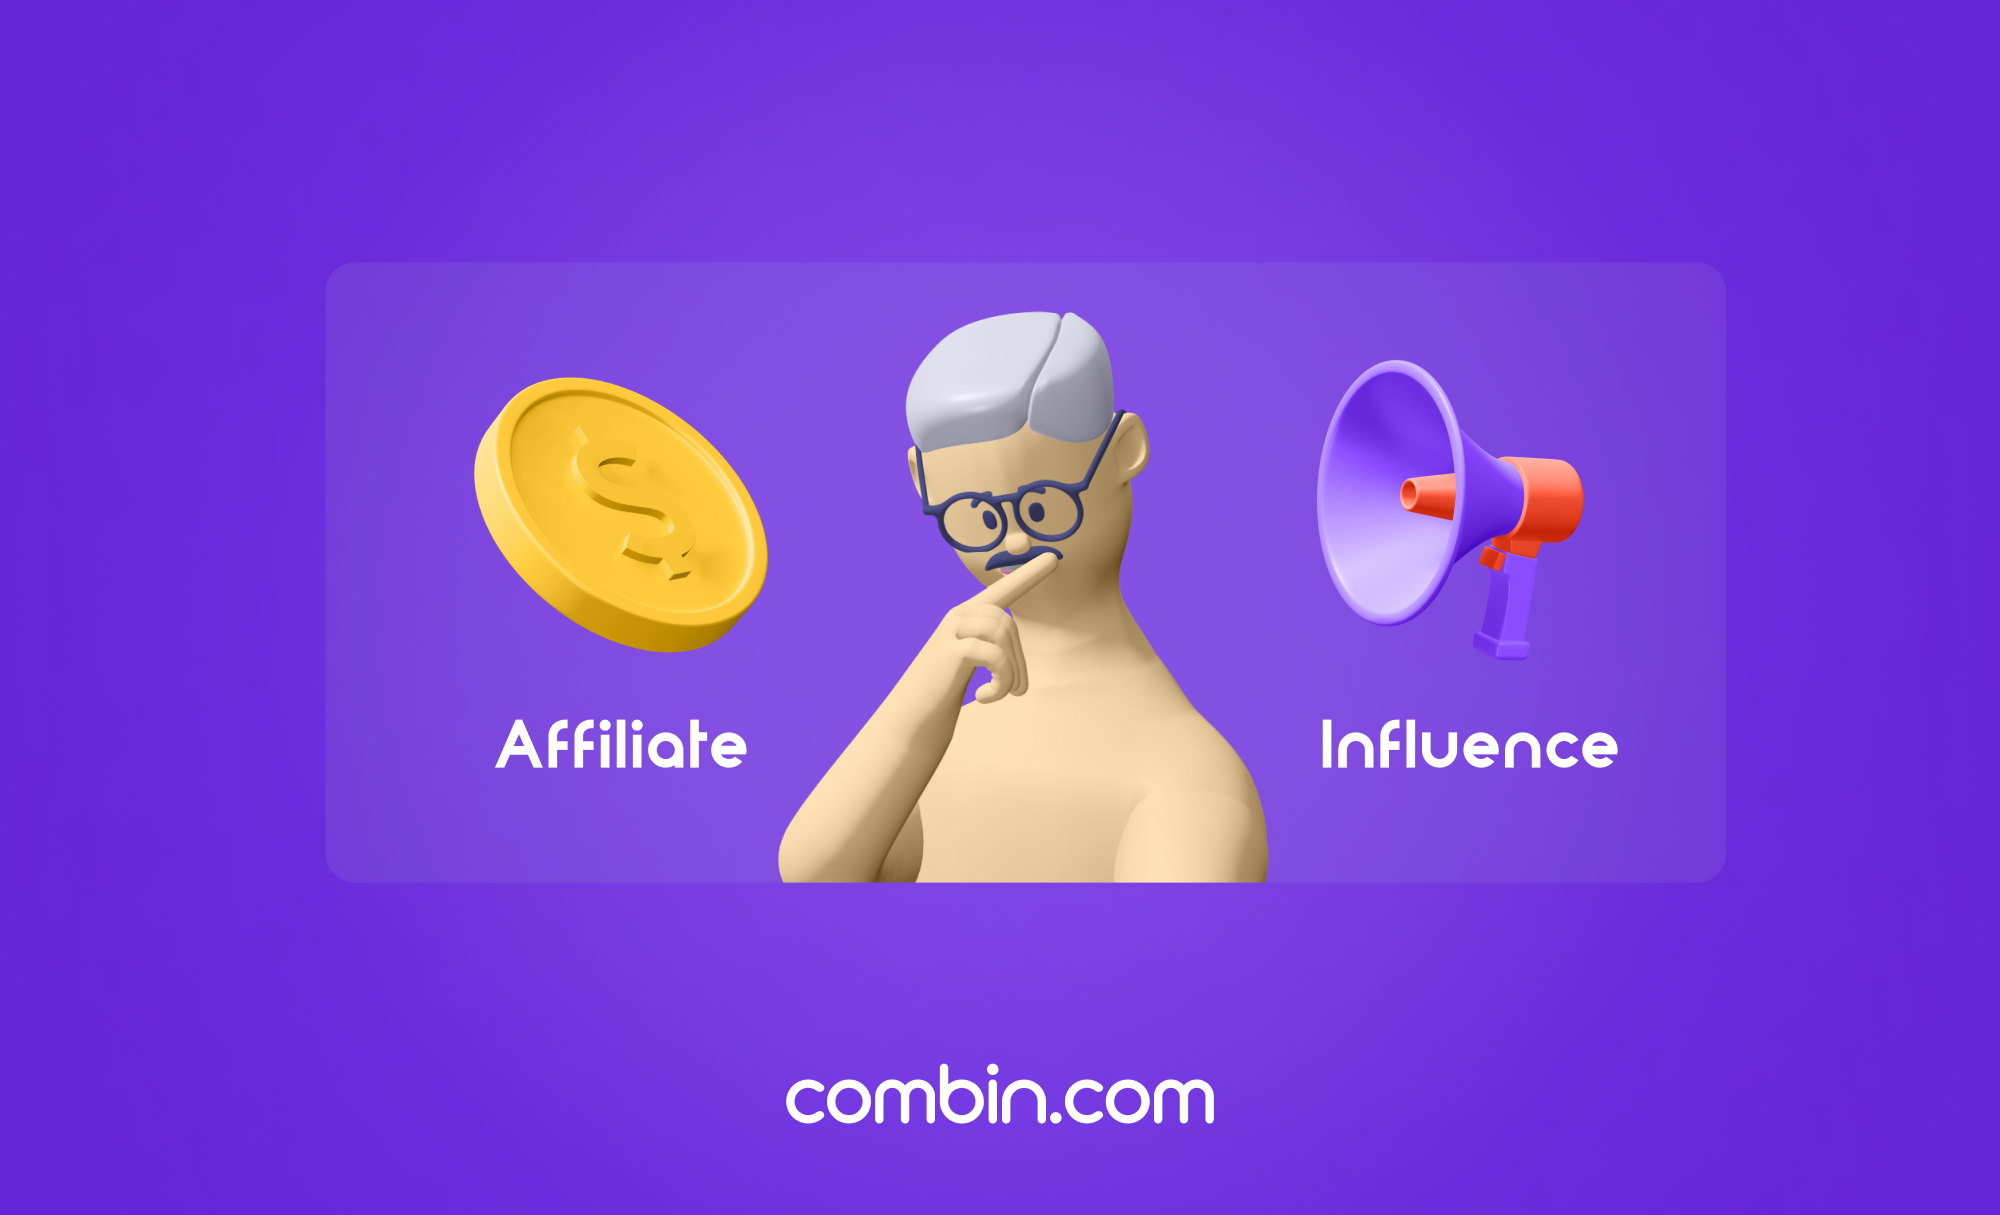 Affiliate Marketing vs Influencer Marketing: What's The Difference